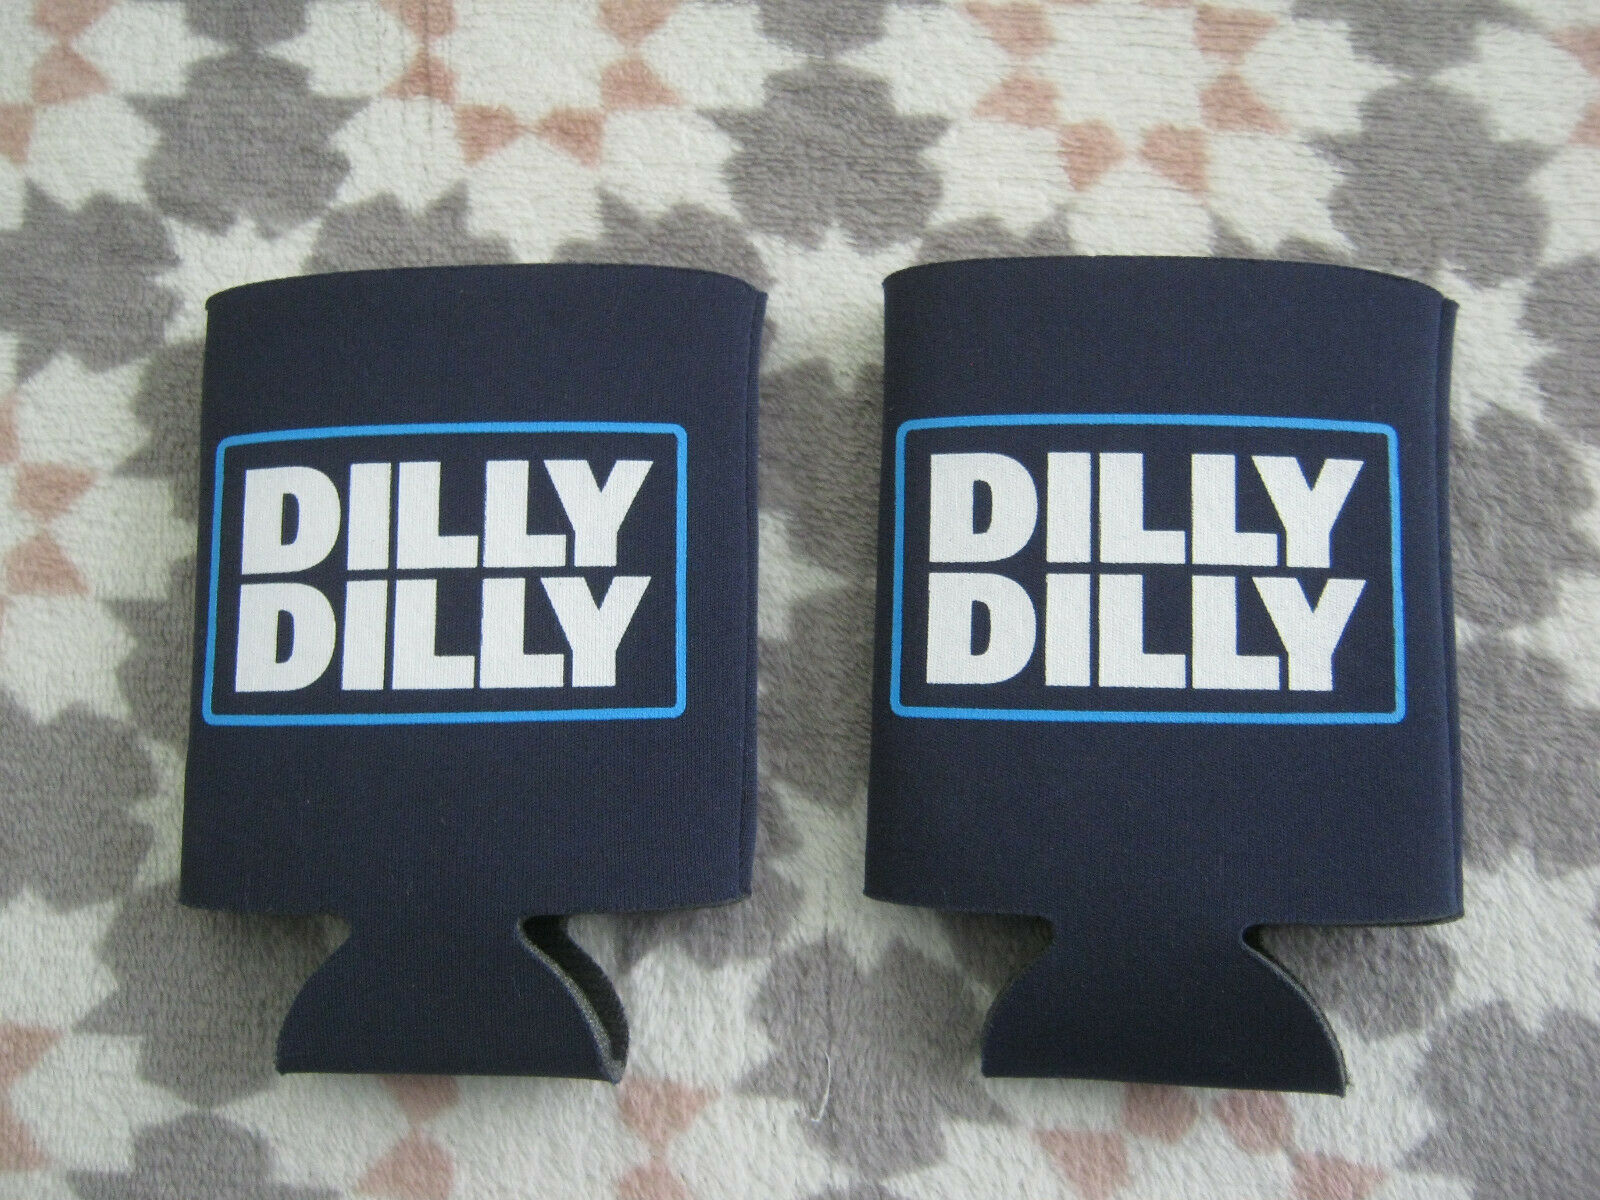 Dilly Dilly Bud Light Beverage Beer Can Neoprene Koozie Drink Insulator New  - $6.00